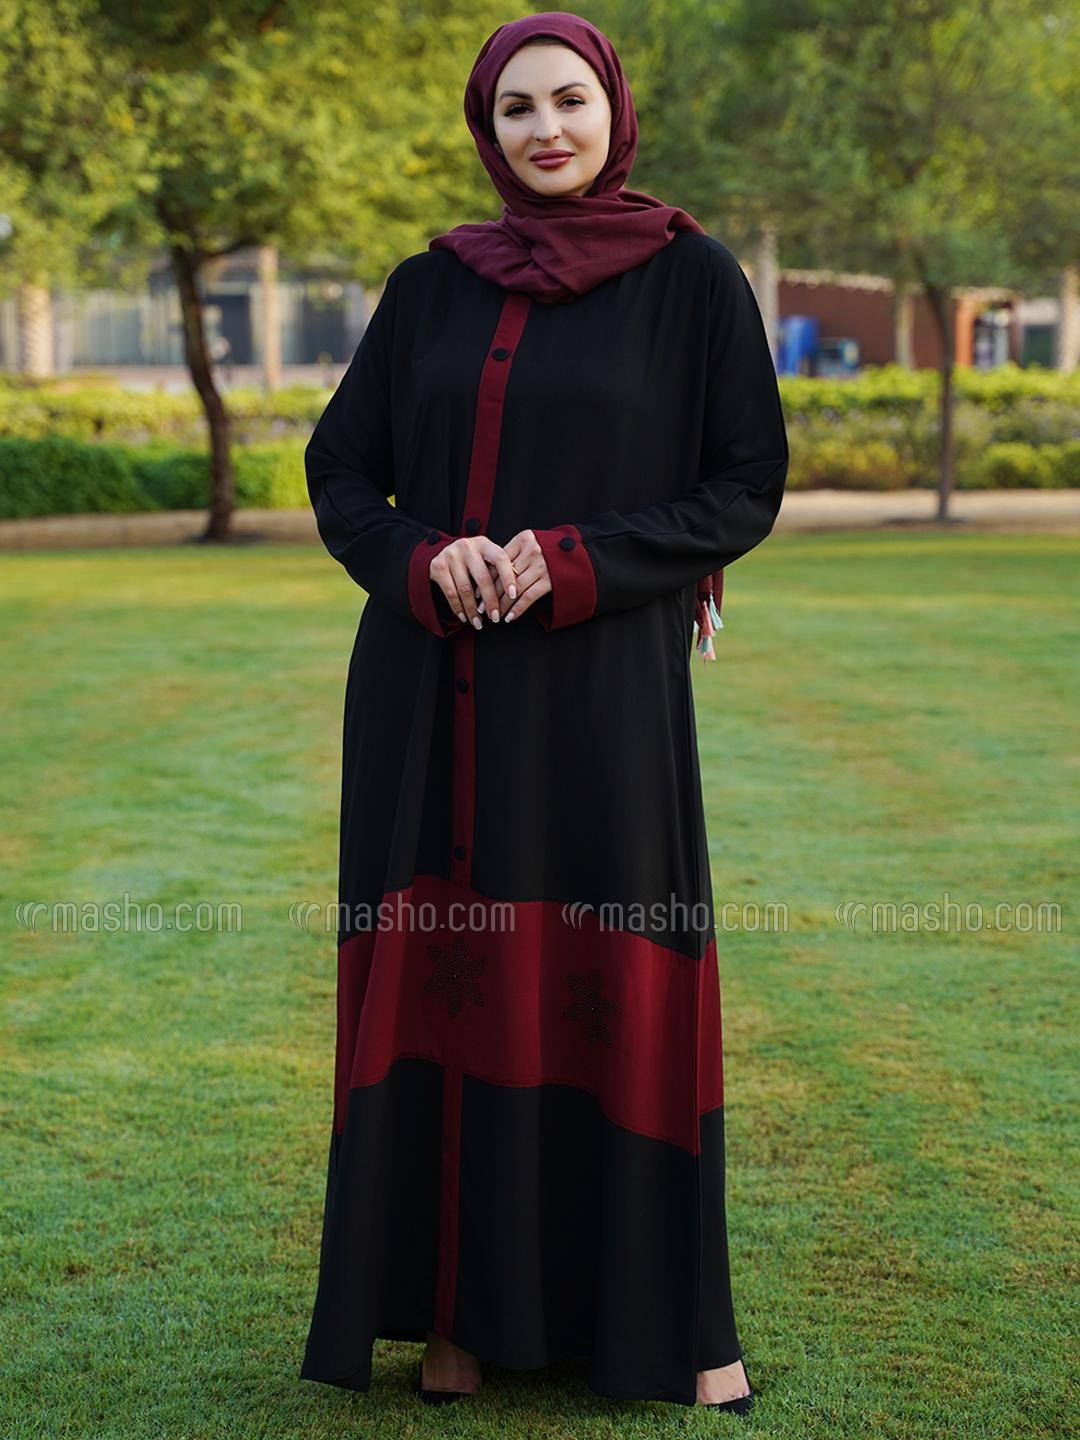 Thoshi Simple Free Size Abaya With Show Button On Front And Sleeve With Stone Work In Maroon And Bla